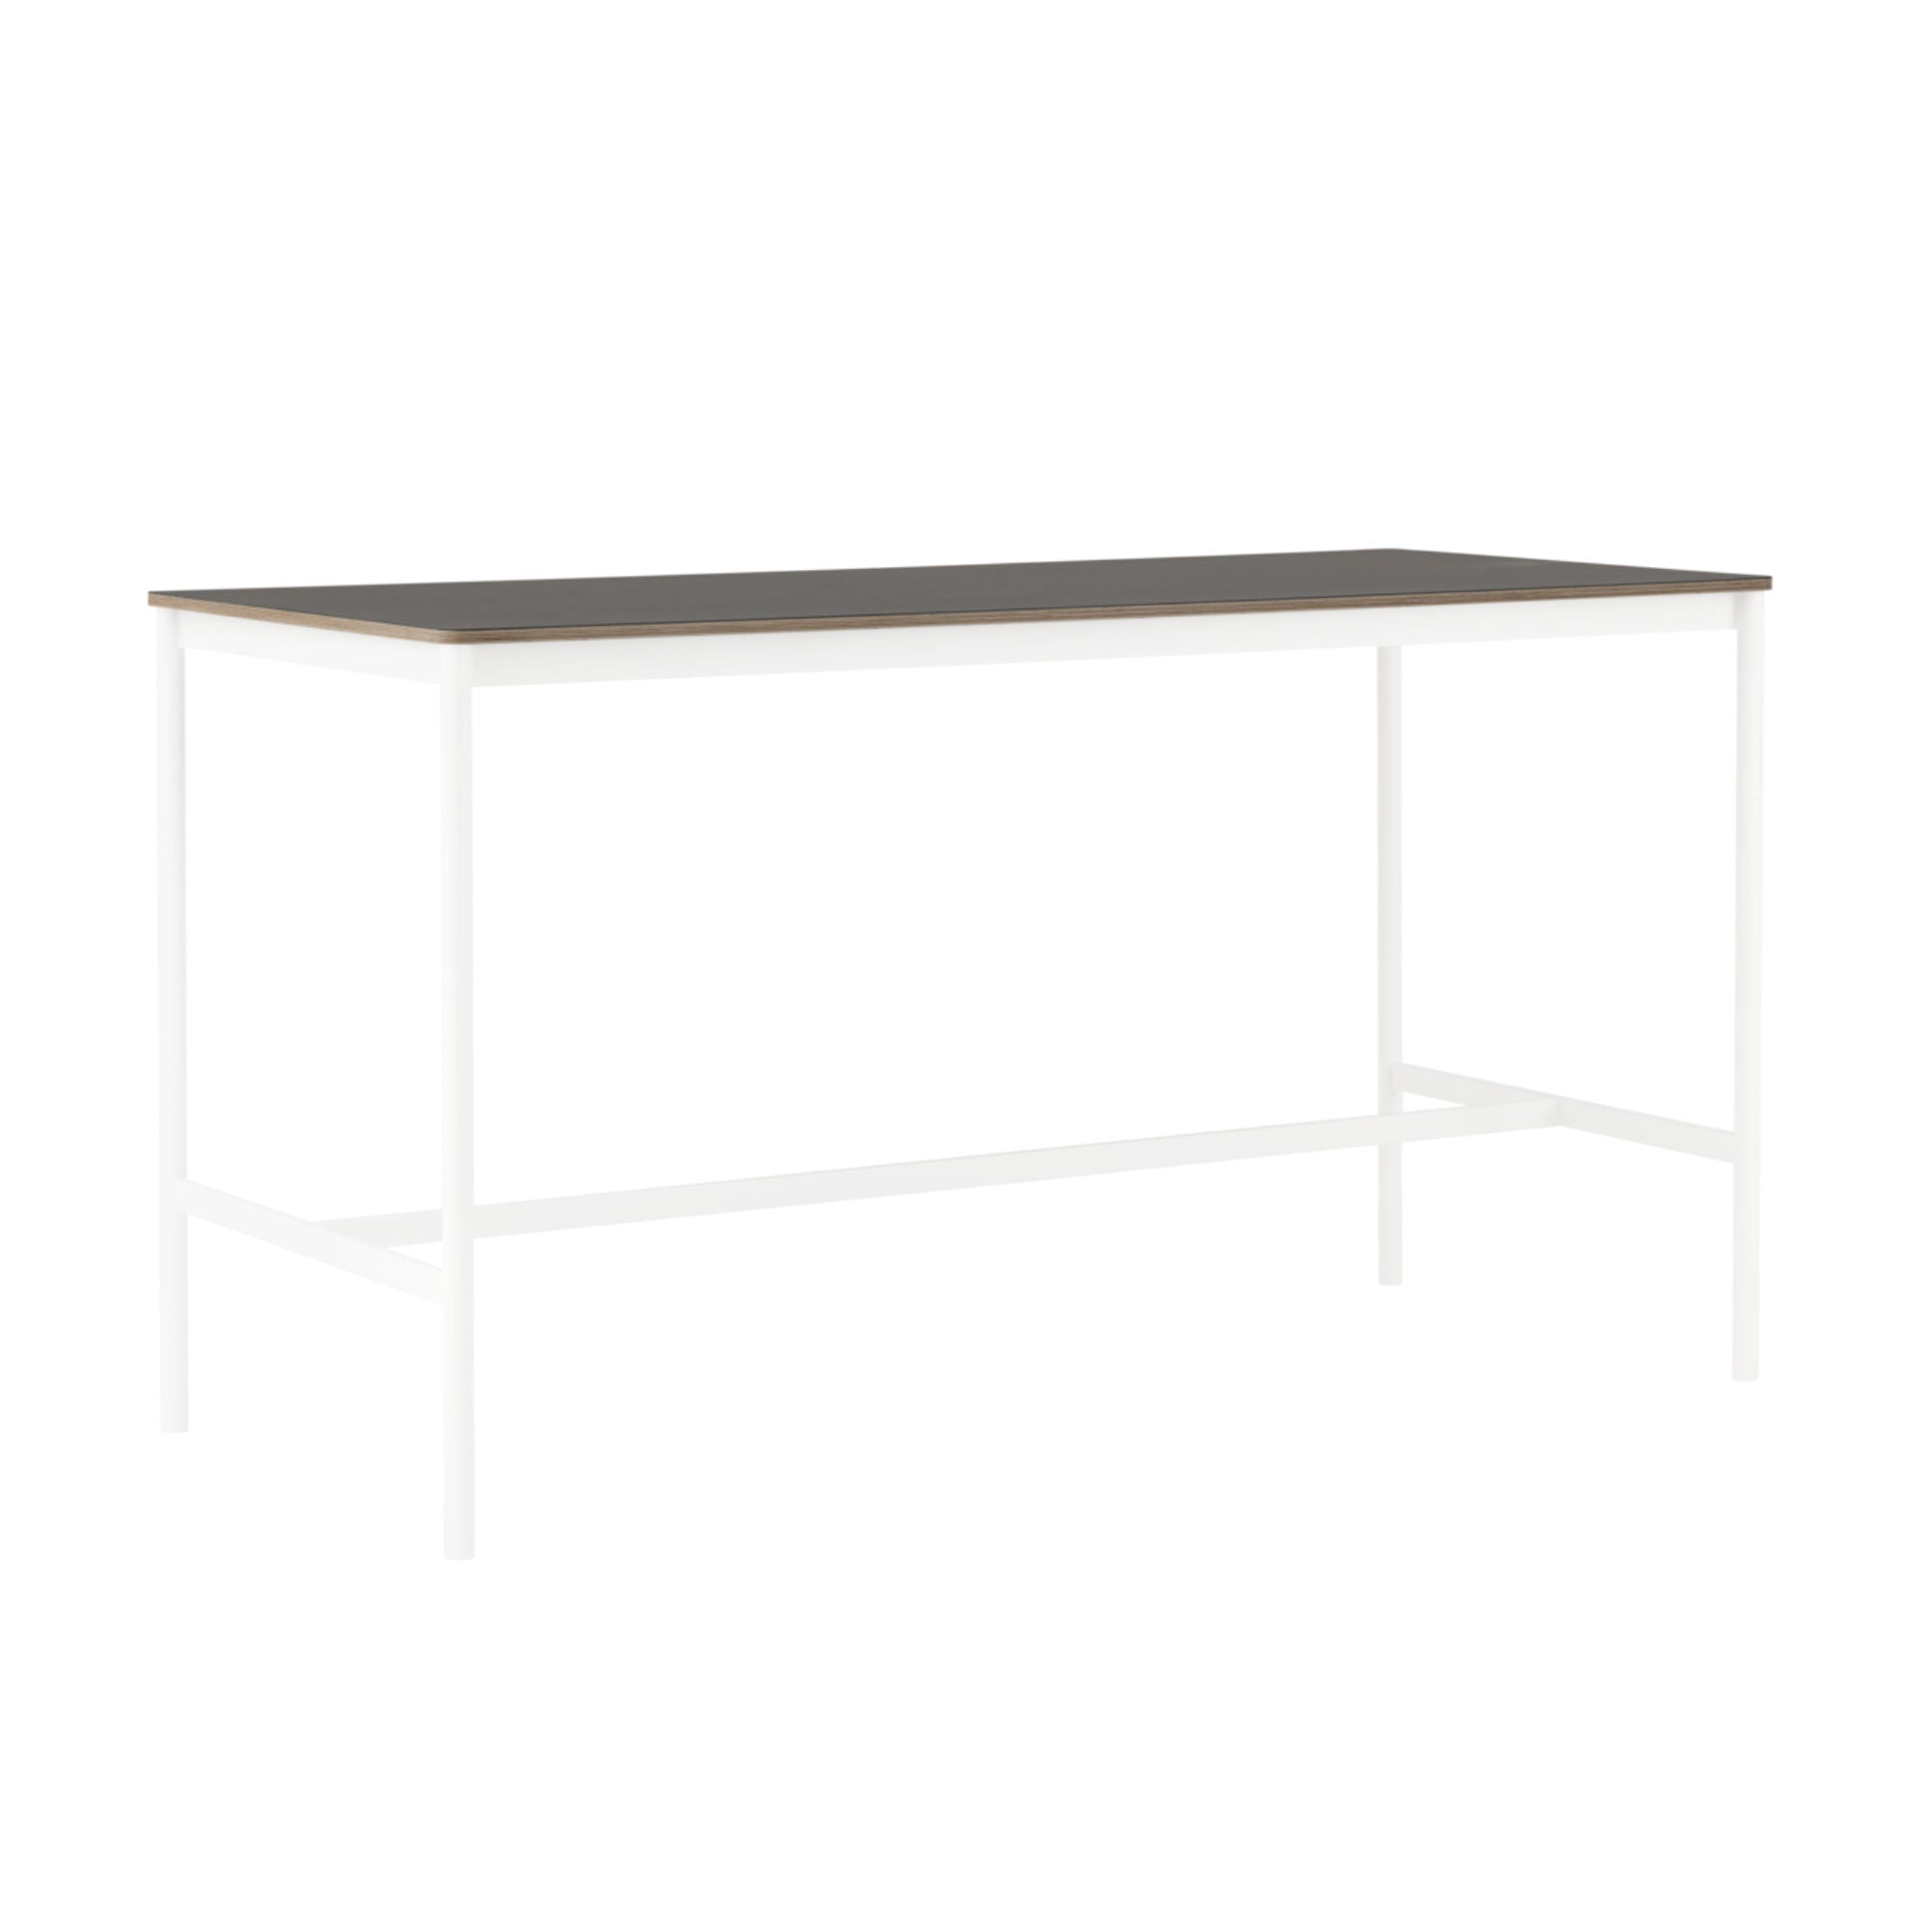 Muuto Base High Table 190x85 h:105cm , Black Linoleum/Plywood/White